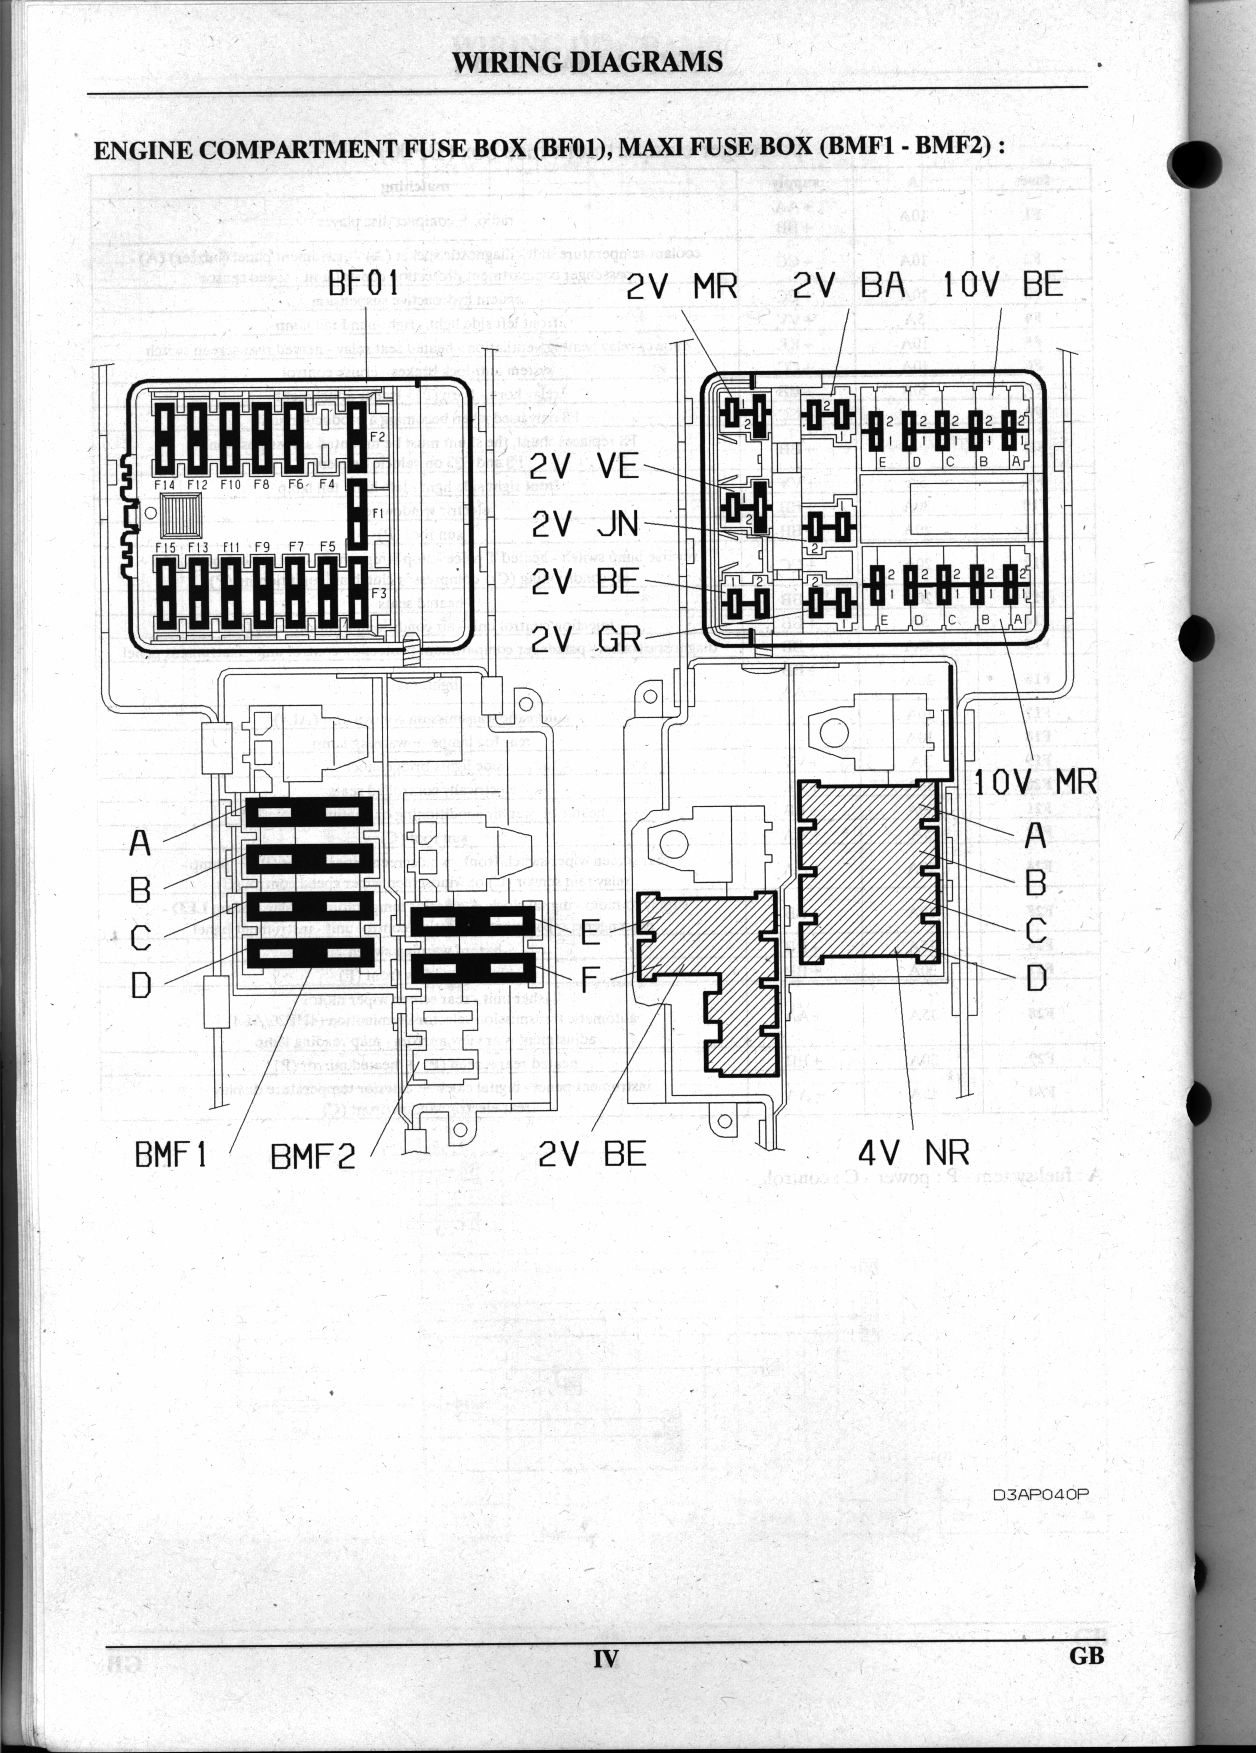 mk2ebfb_1 citroen saxo fuse box diagram 2004 ford explorer fuse box diagram  citroen saxo fuse box